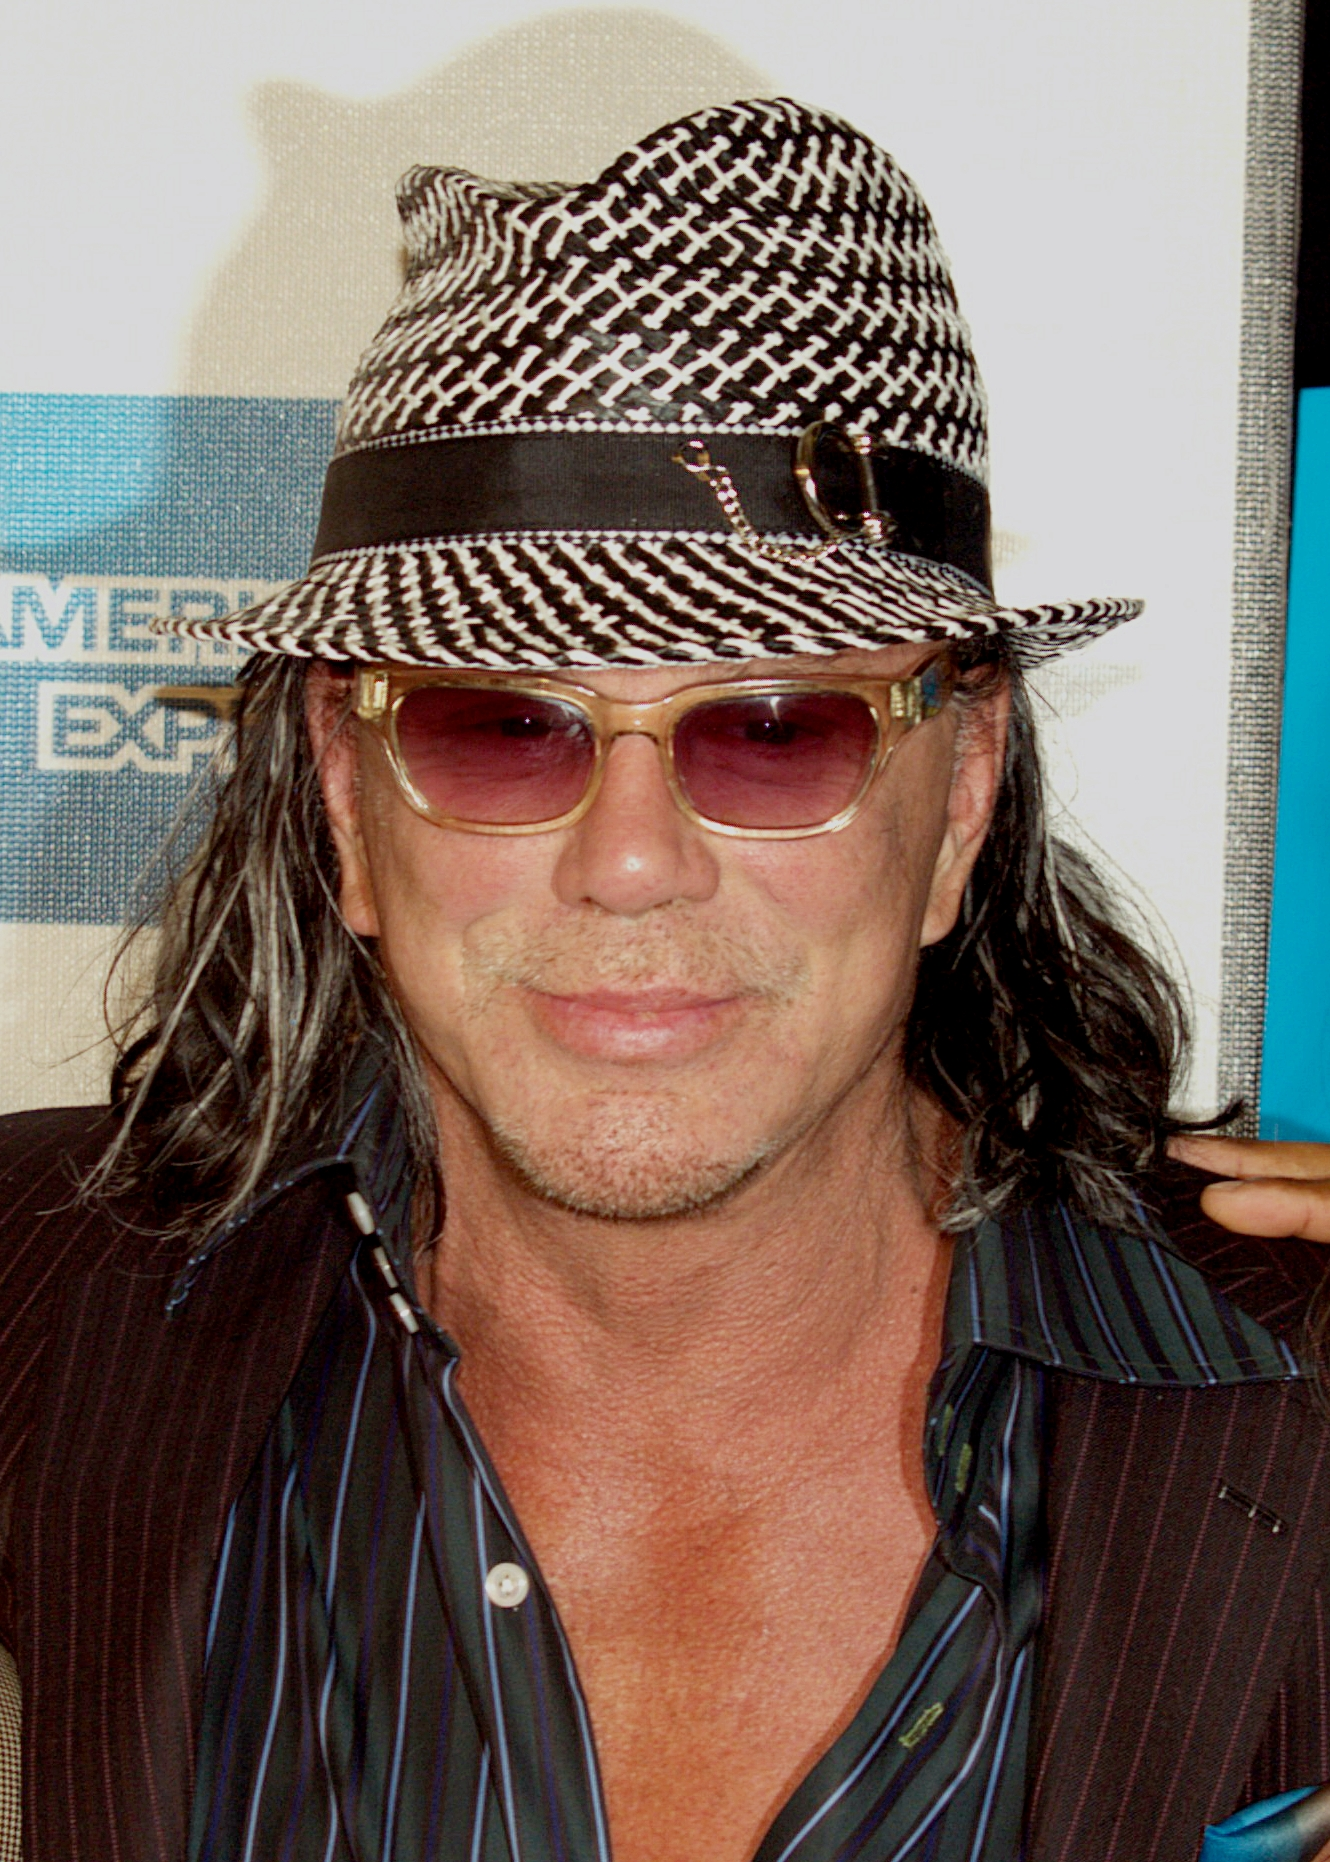 Is Mickey Rourke Rap or Poetry? Why?